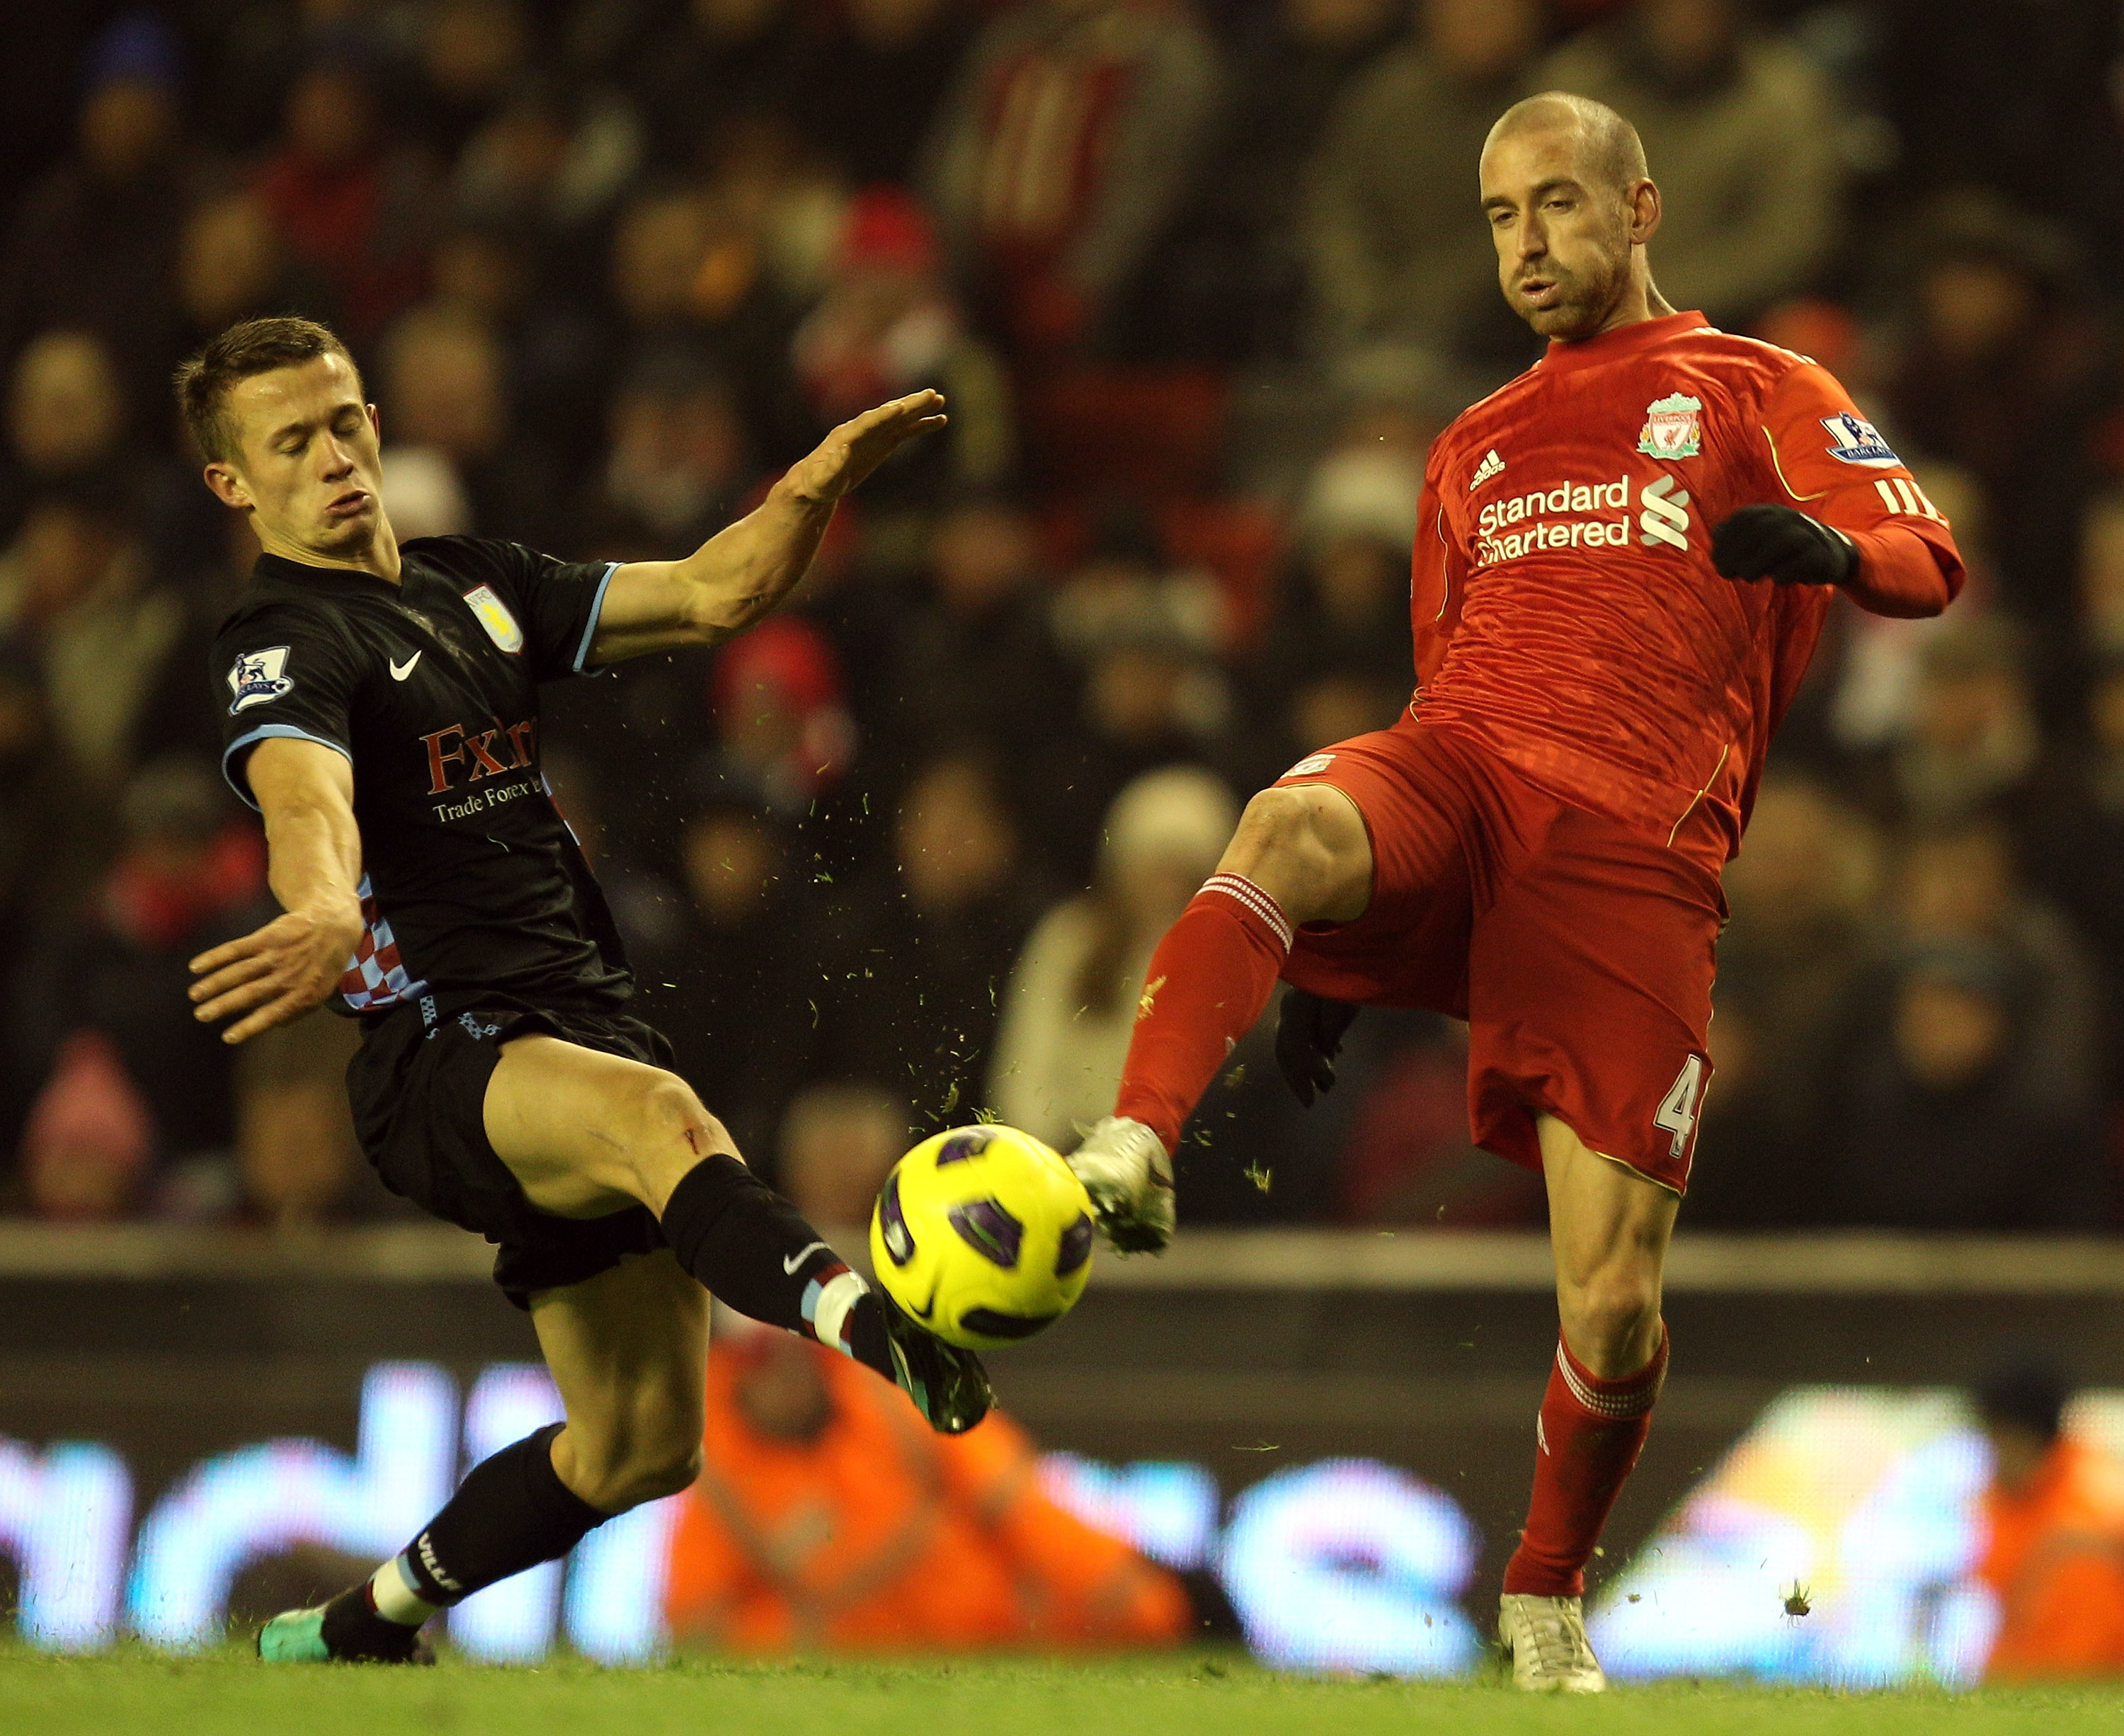 LIVERPOOL, ENGLAND - DECEMBER 06:  Jonathan Hogg of Aston Villa competes with Raul Meireles of Liverpool during the Barclays Premier League match between Liverpool and Aston Villa at Anfield on December 6, 2010 in Liverpool, England. (Photo by Mark Thomps